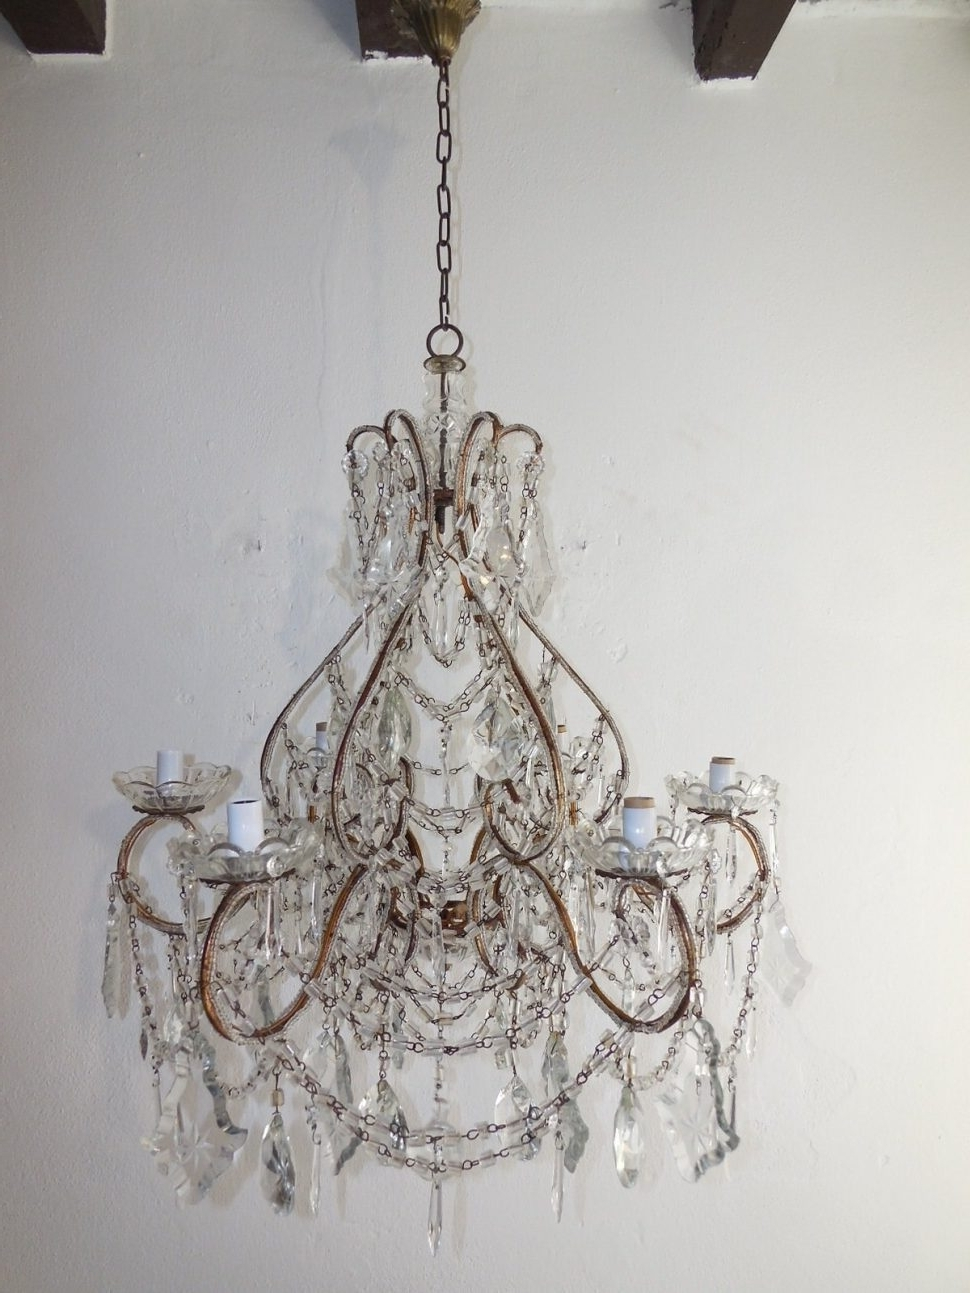 Lead Crystal Chandelier With Newest Chandeliers : Lead Crystal Chandelier Prisms Chandeliers Design Lamp (View 20 of 20)